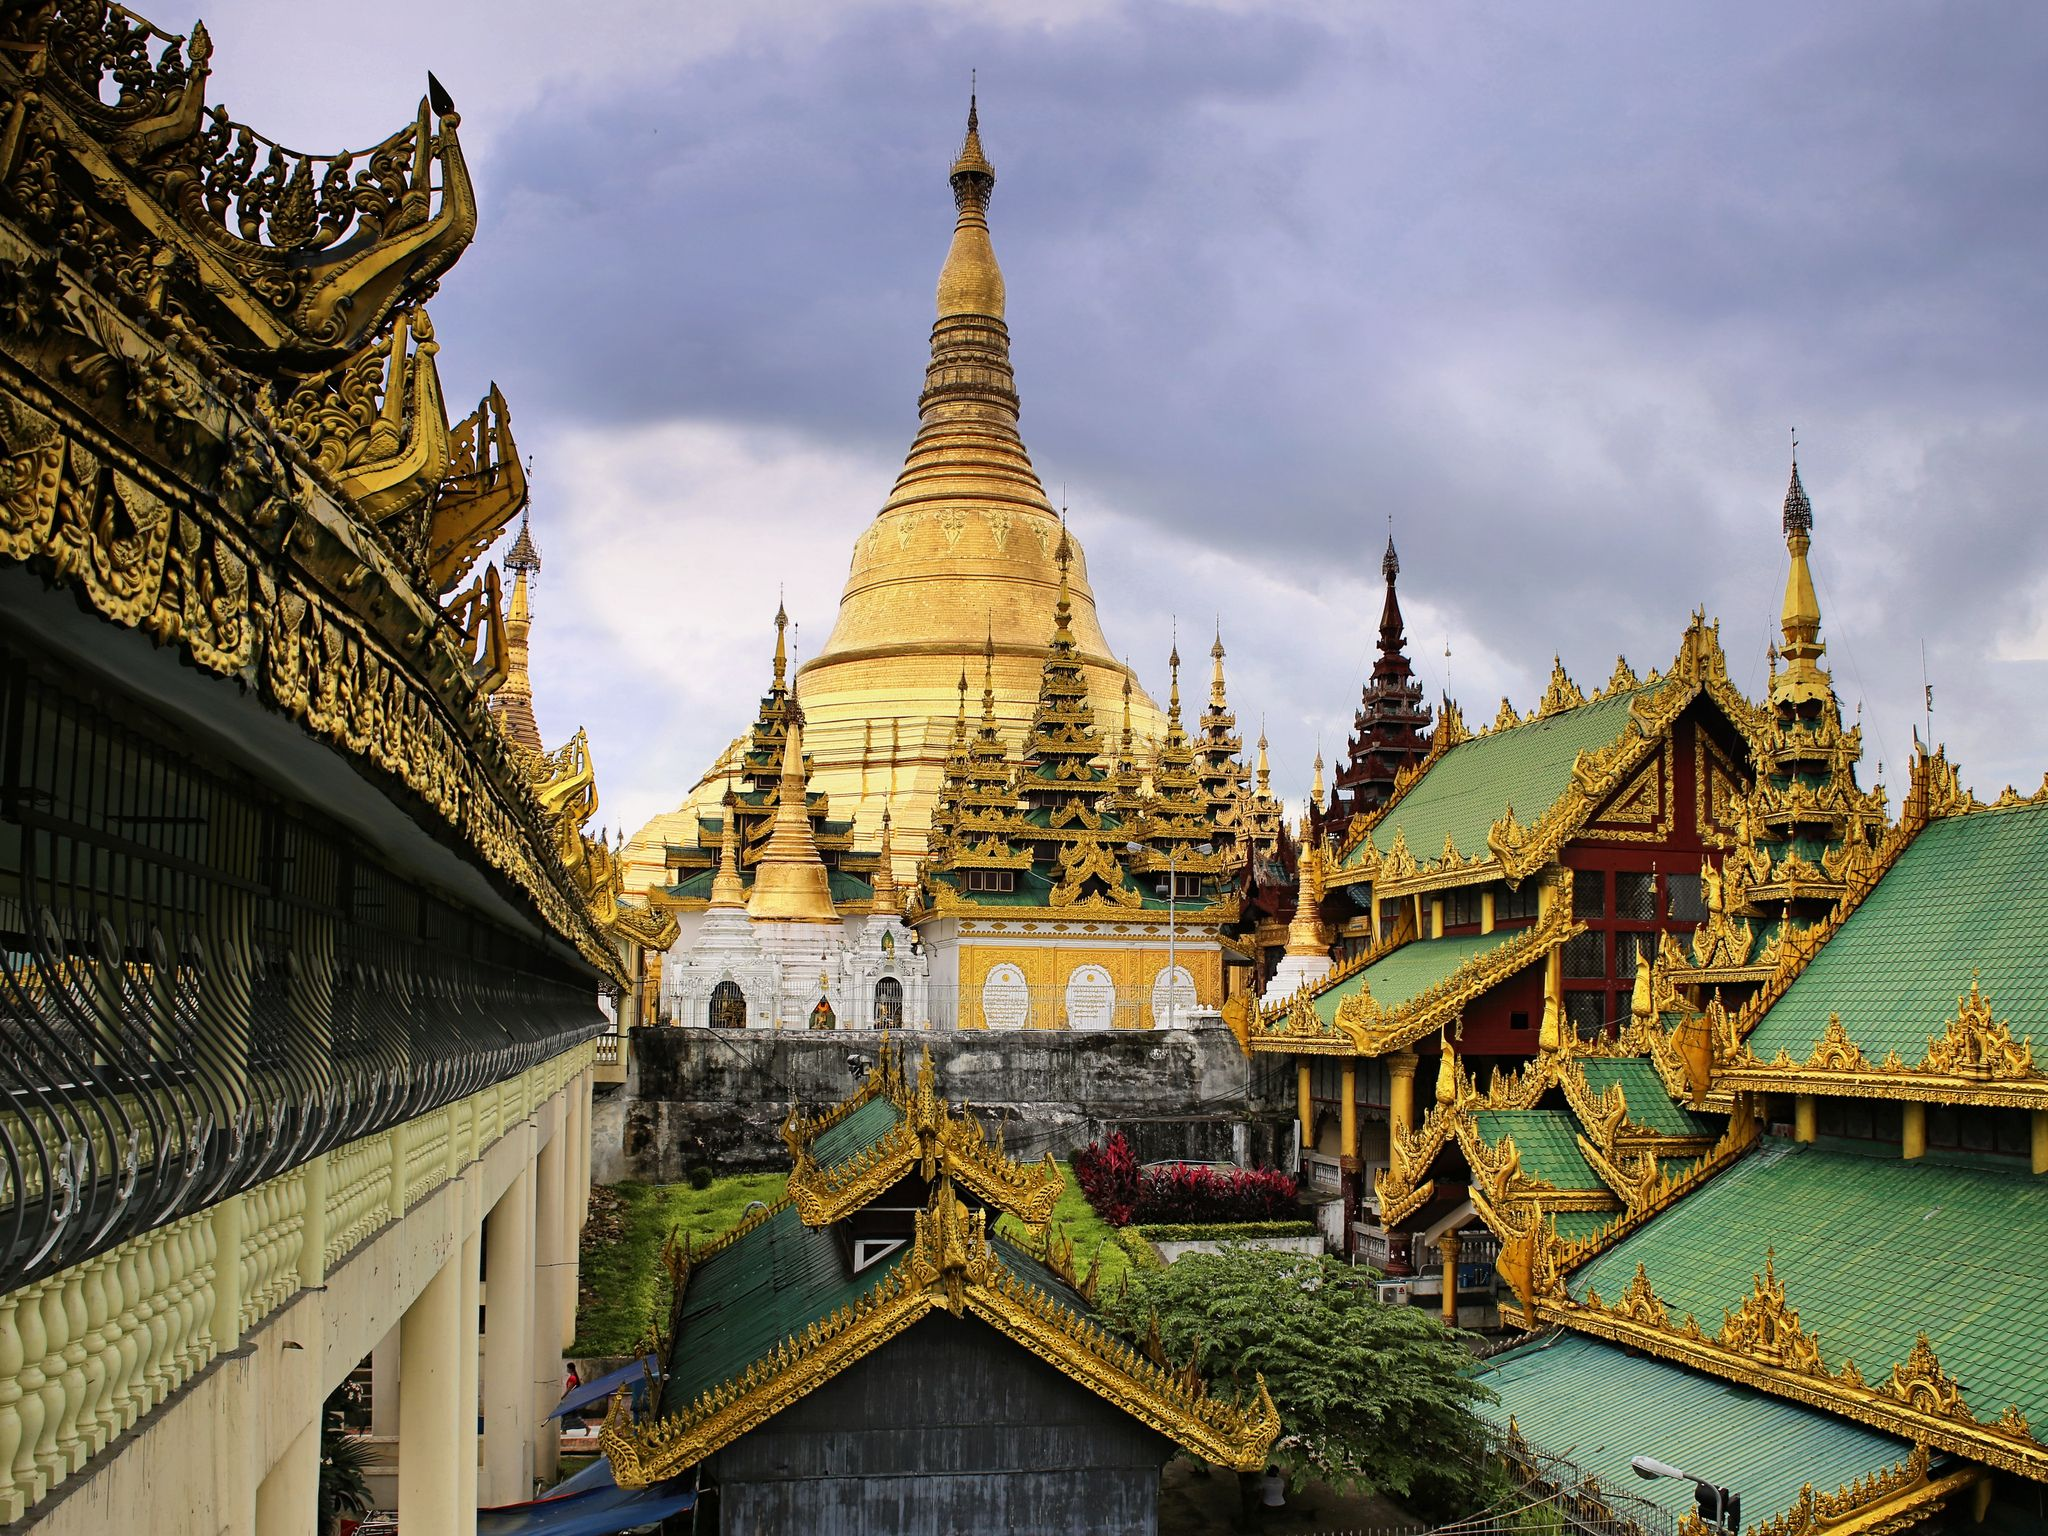 Yangon City Tour (4 Days / 3 Nights)